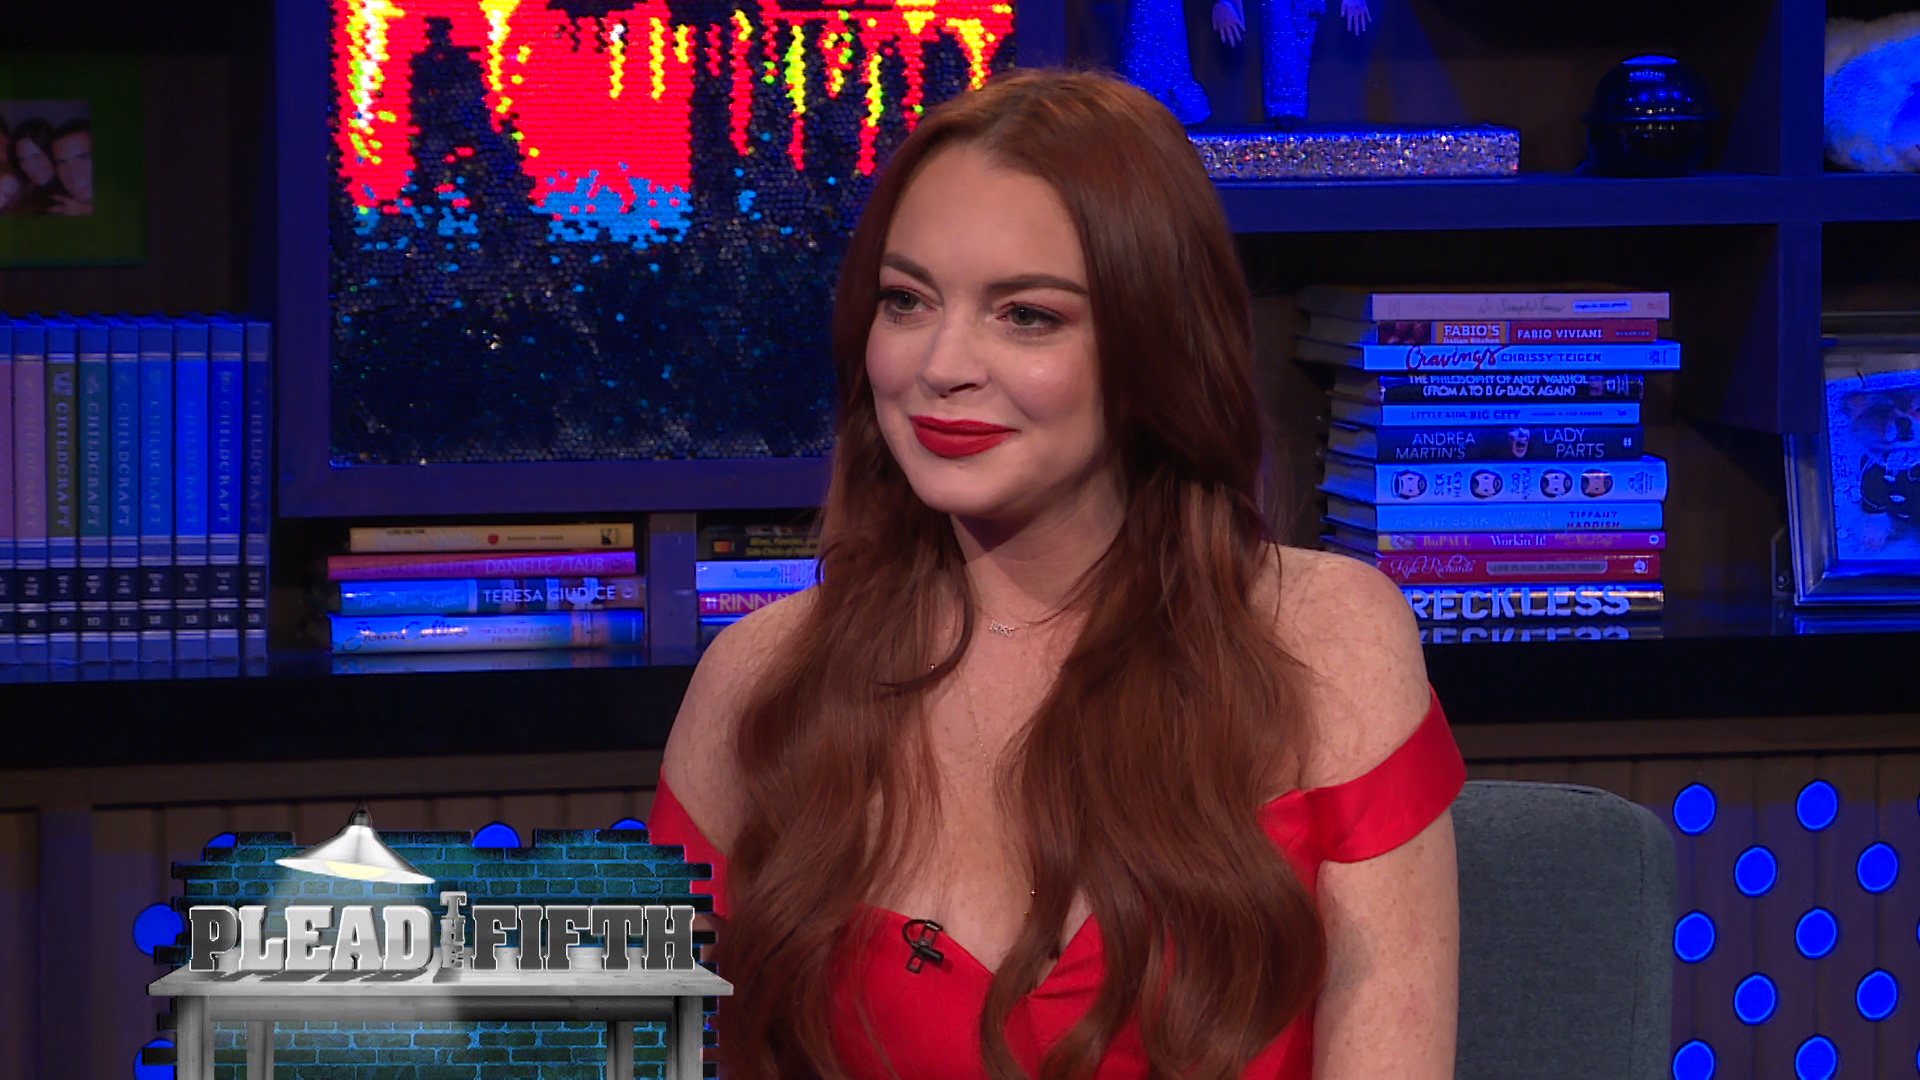 Lindsay Lohan Denies Hooking up With 'Vanderpump Rules' Star Jax Taylor